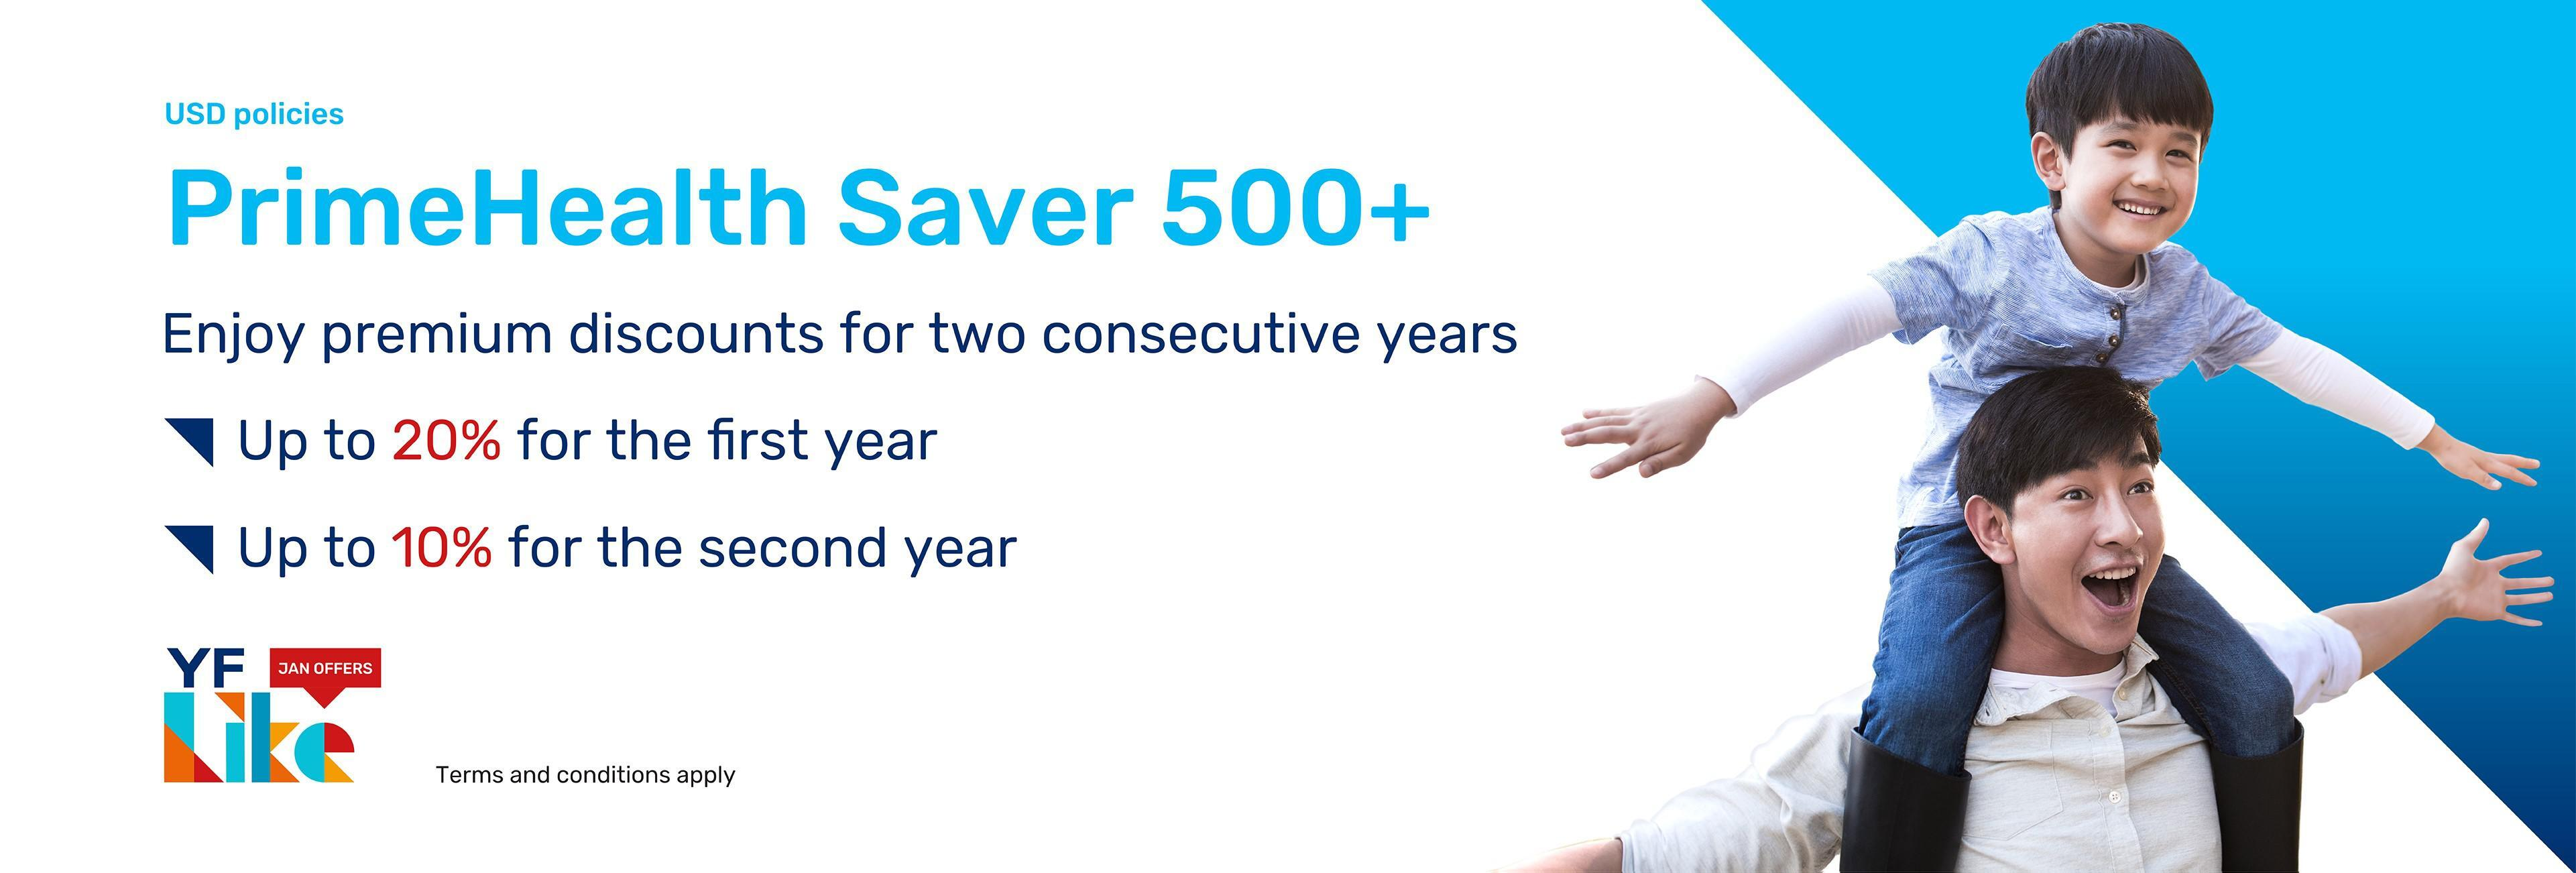 """From now until January 29, upon successful application for a US dollar """"PrimeHealth Saver 500+"""" policy to enjoy Dual Offers, including a first-year premium discount of up to 20% and a second-year premium discount of up to 10%, as well as up to 100% extra coverage for the first 15 years on major critical illness / death benefit."""